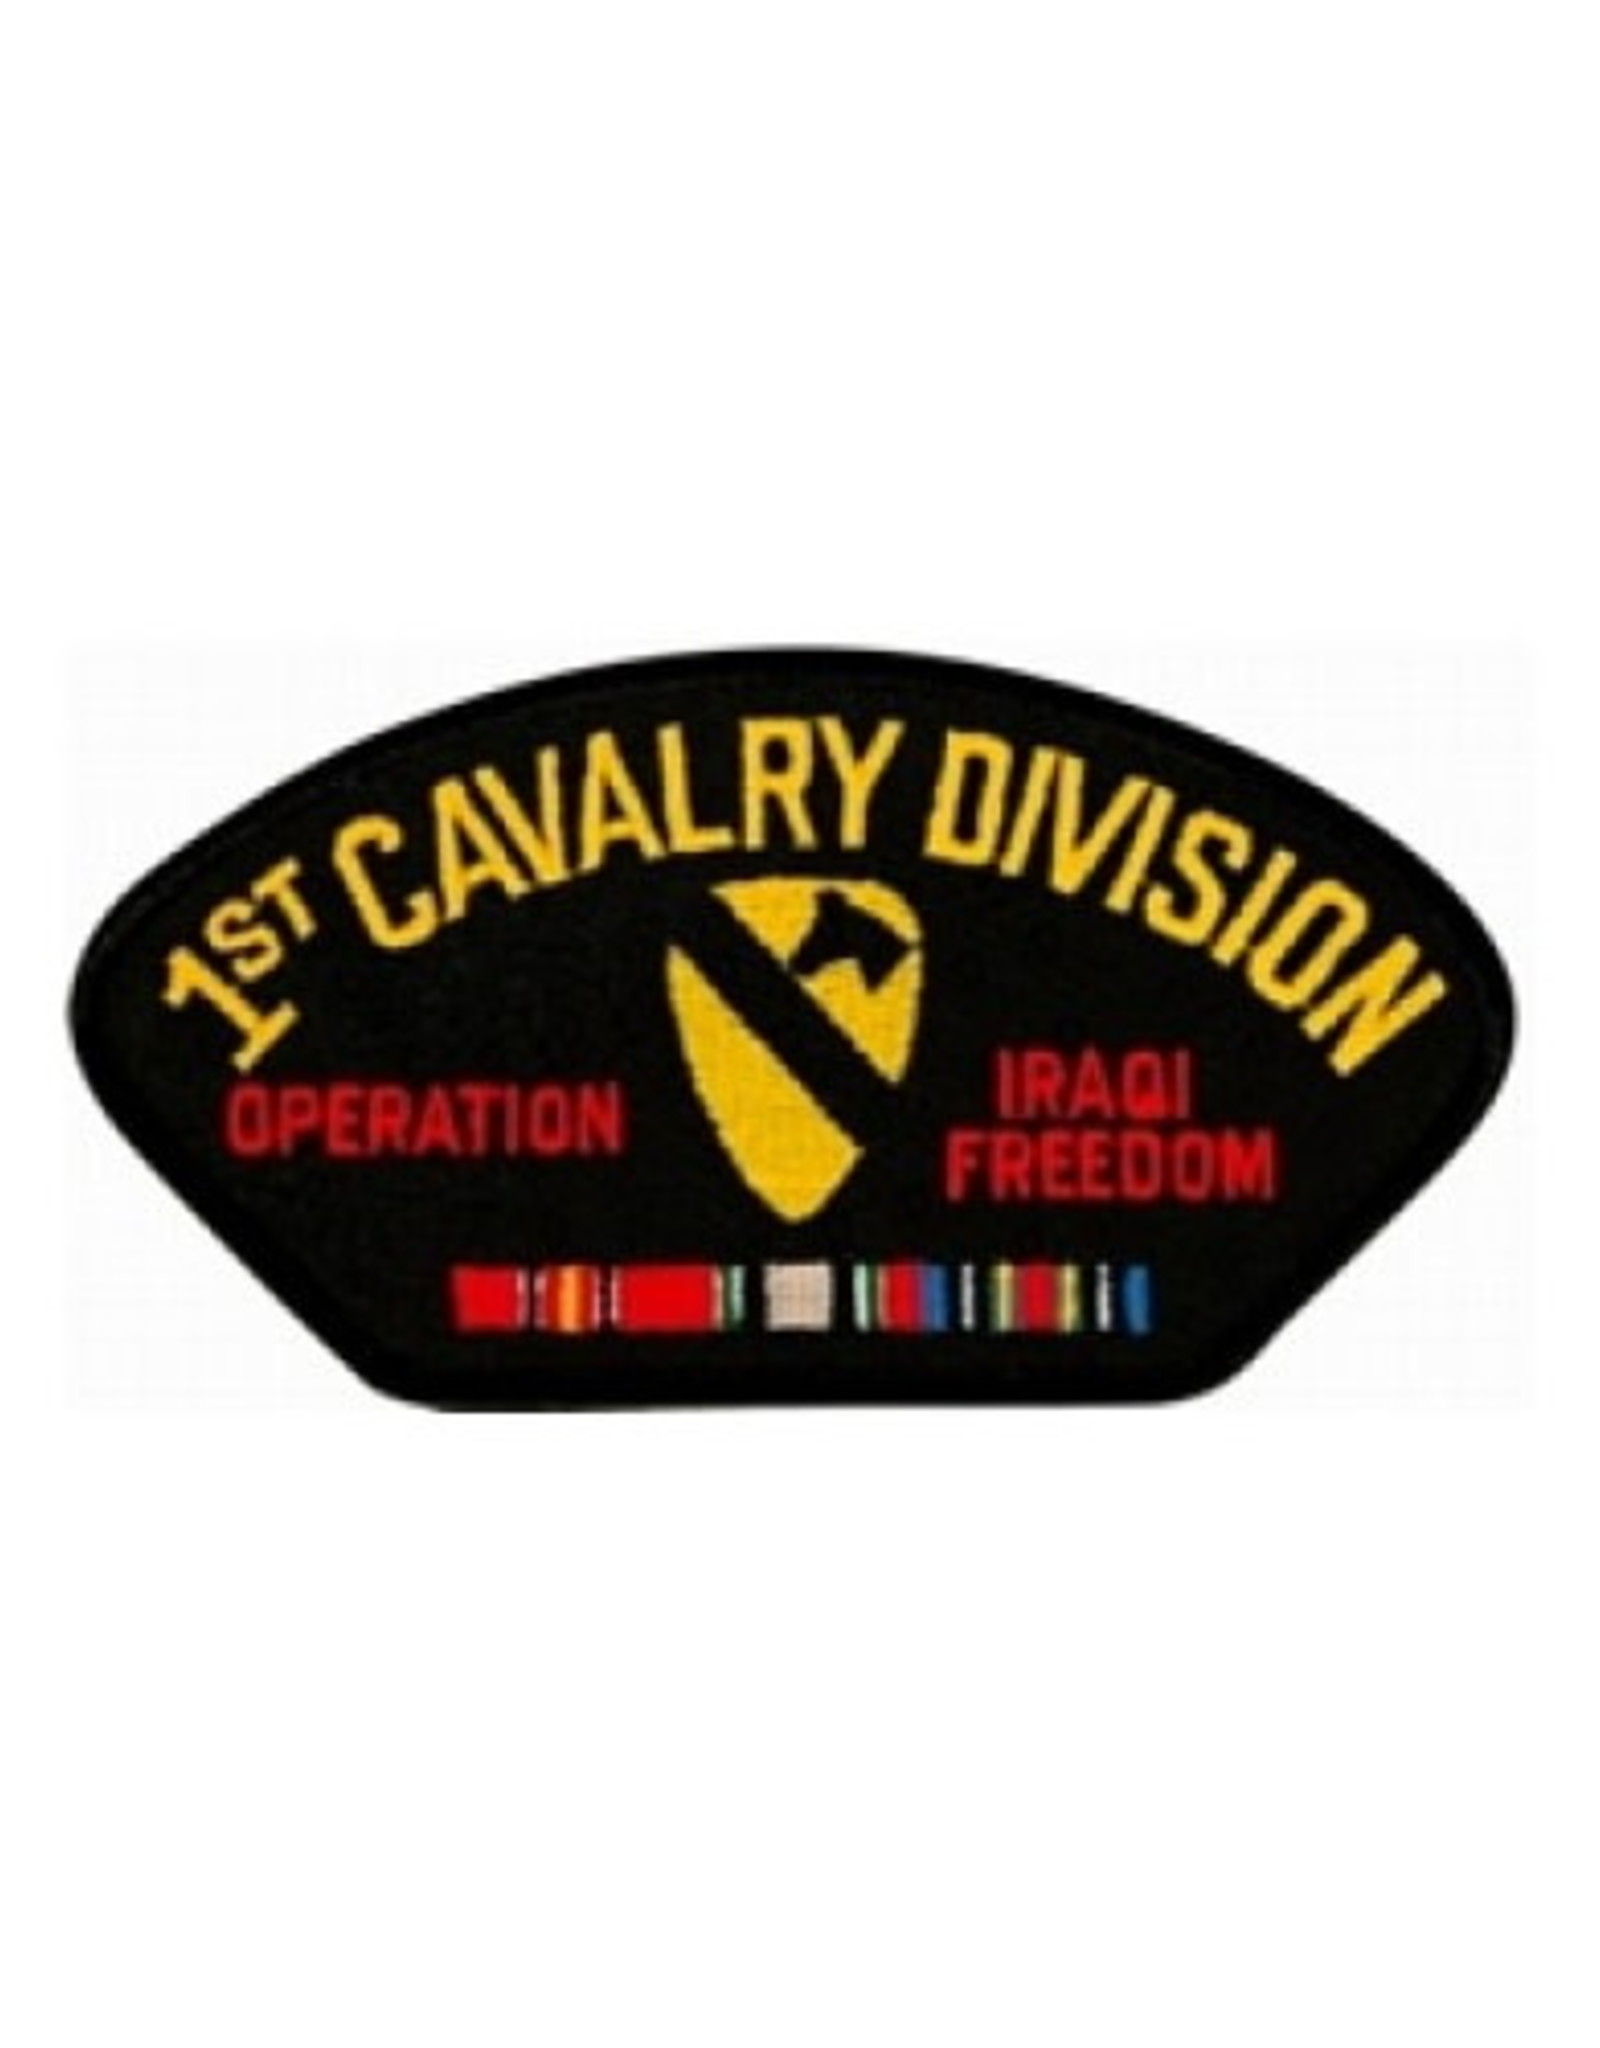 "MidMil Embroidered 1st Cavalry Division Operation Iraqi Freedom  Patch with Emblem and Ribbons 5.2"" wide x 2.7"" high Black"